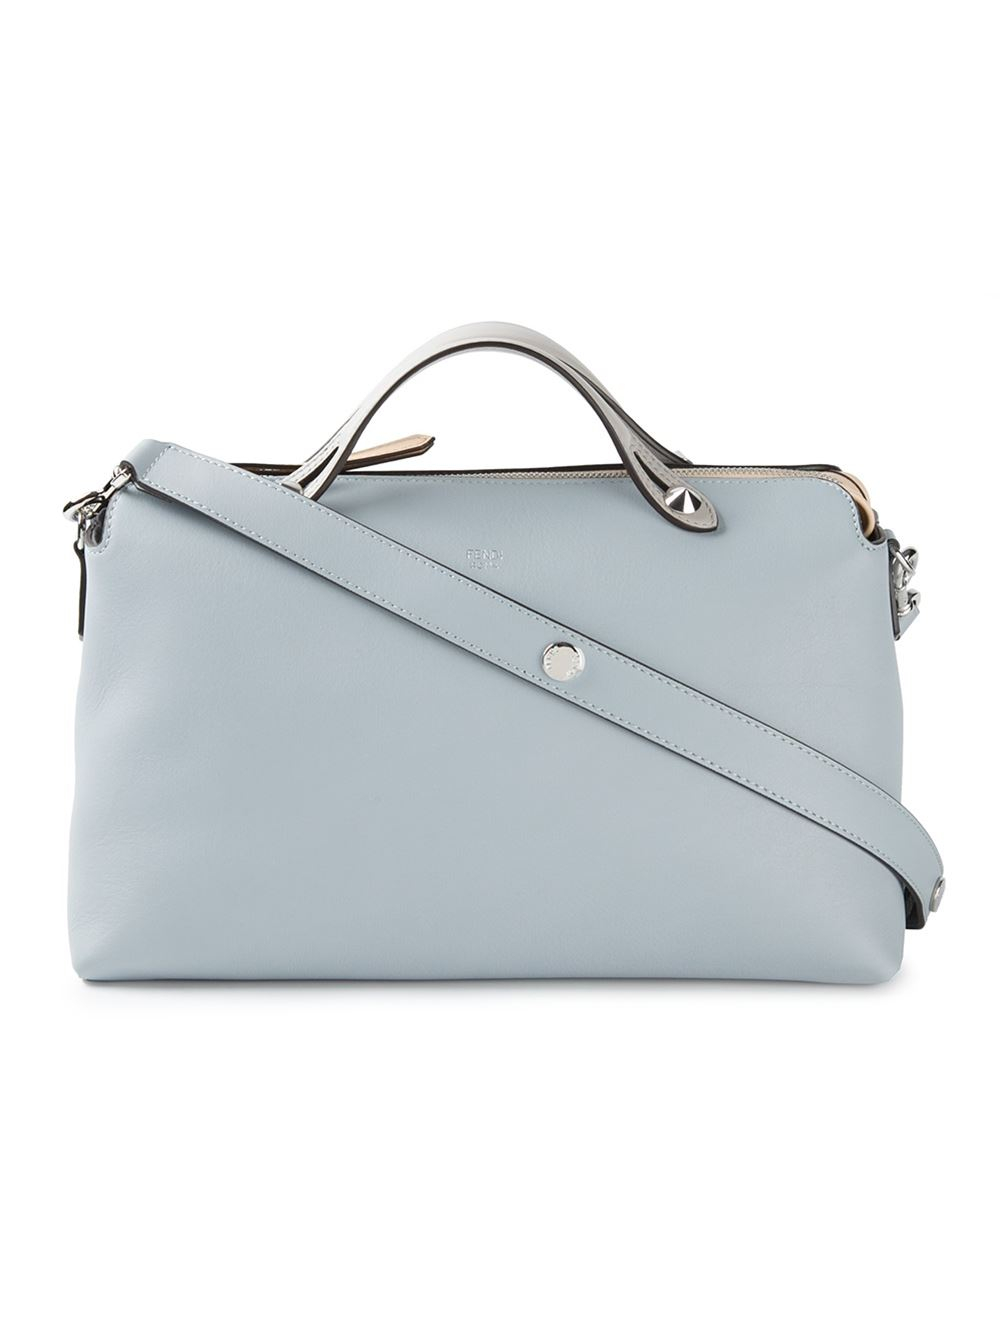 0f80d730ad0f Lyst - Fendi  By The Way  Tote in Blue